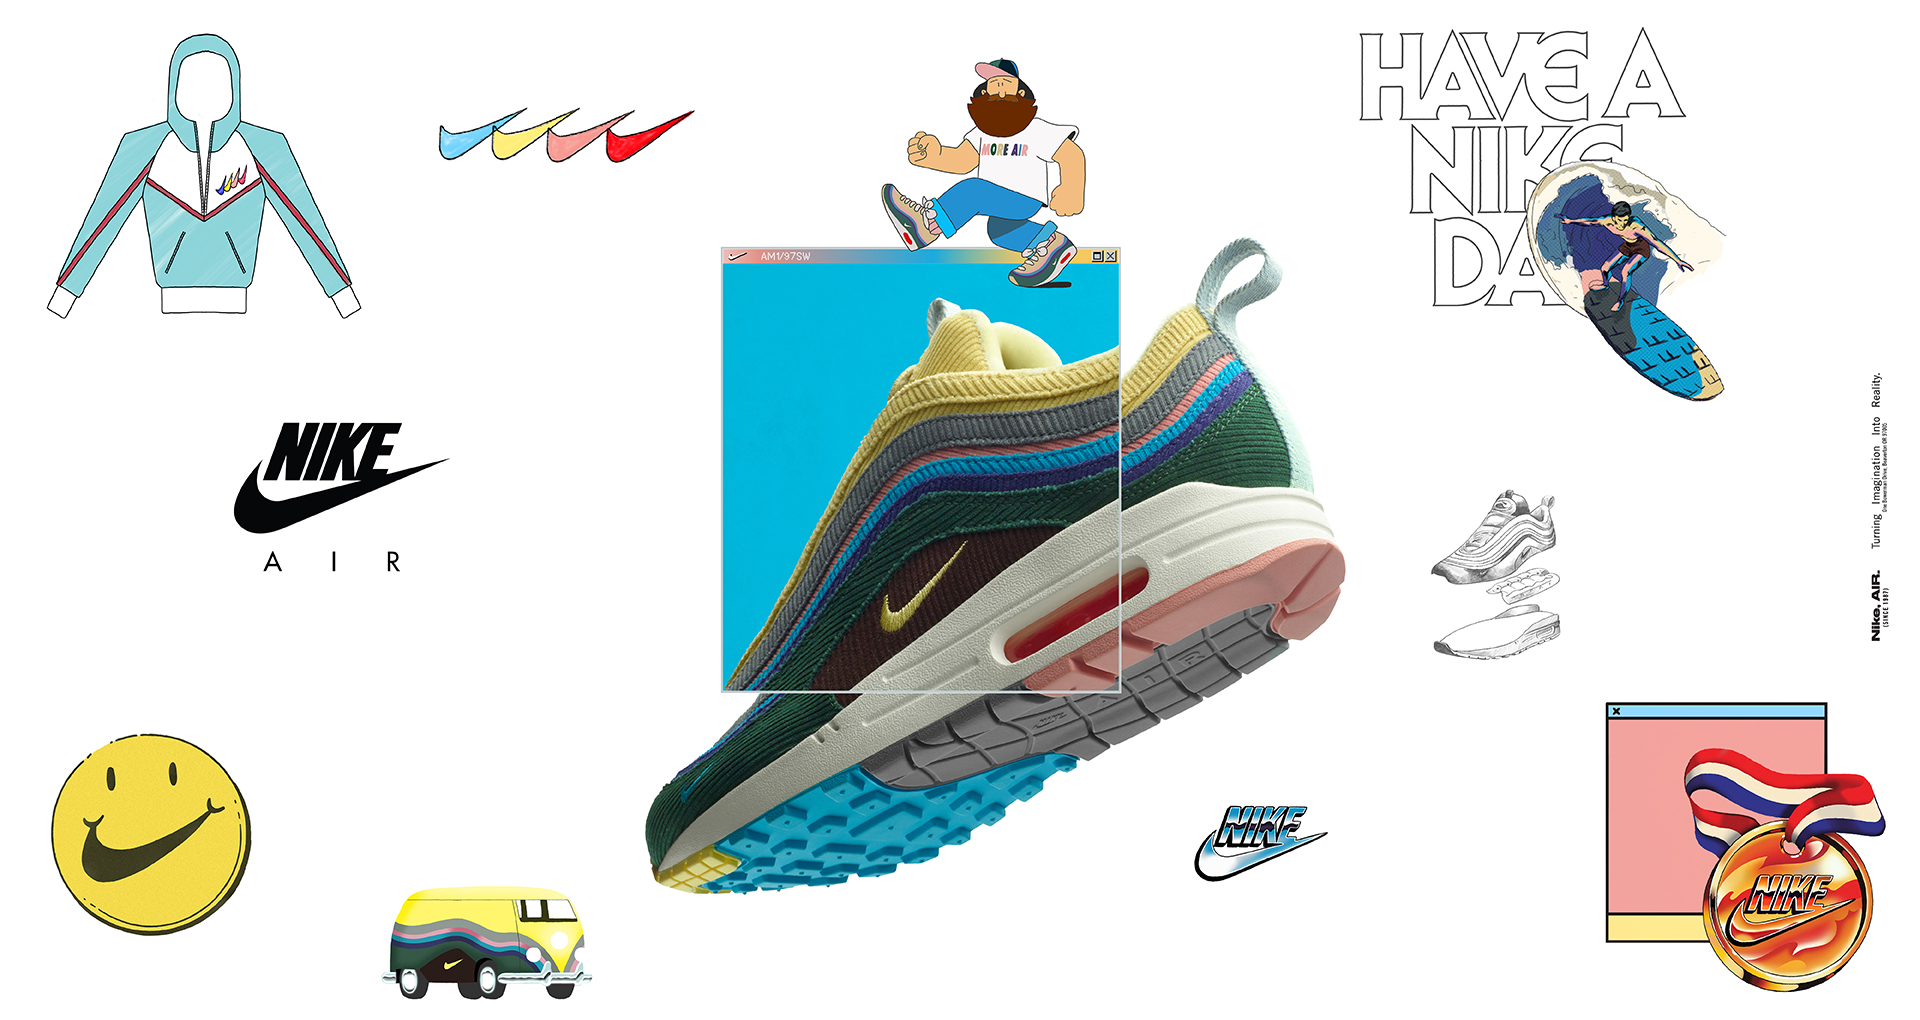 Nike Air Max 971 x Sean Wotherspoon: Dropping This Week